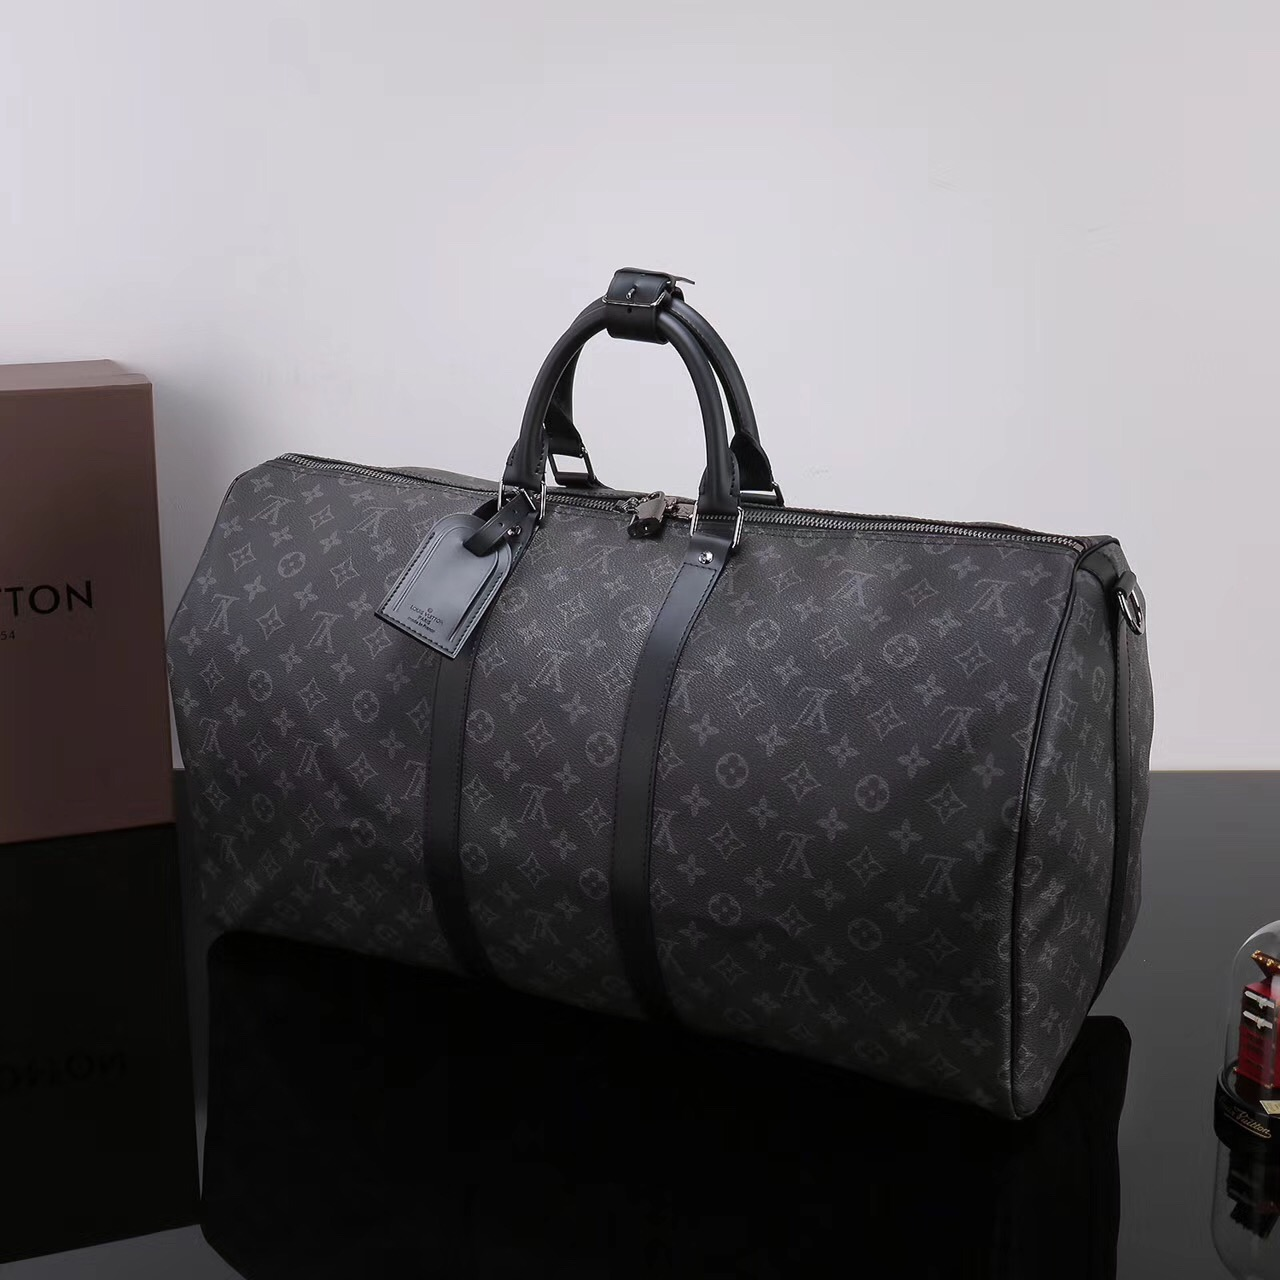 ad3f352c47bf ... Men LV Louis Vuitton M40605 Keepall 55 Travelling Handbags Monogram bags  Gray ...